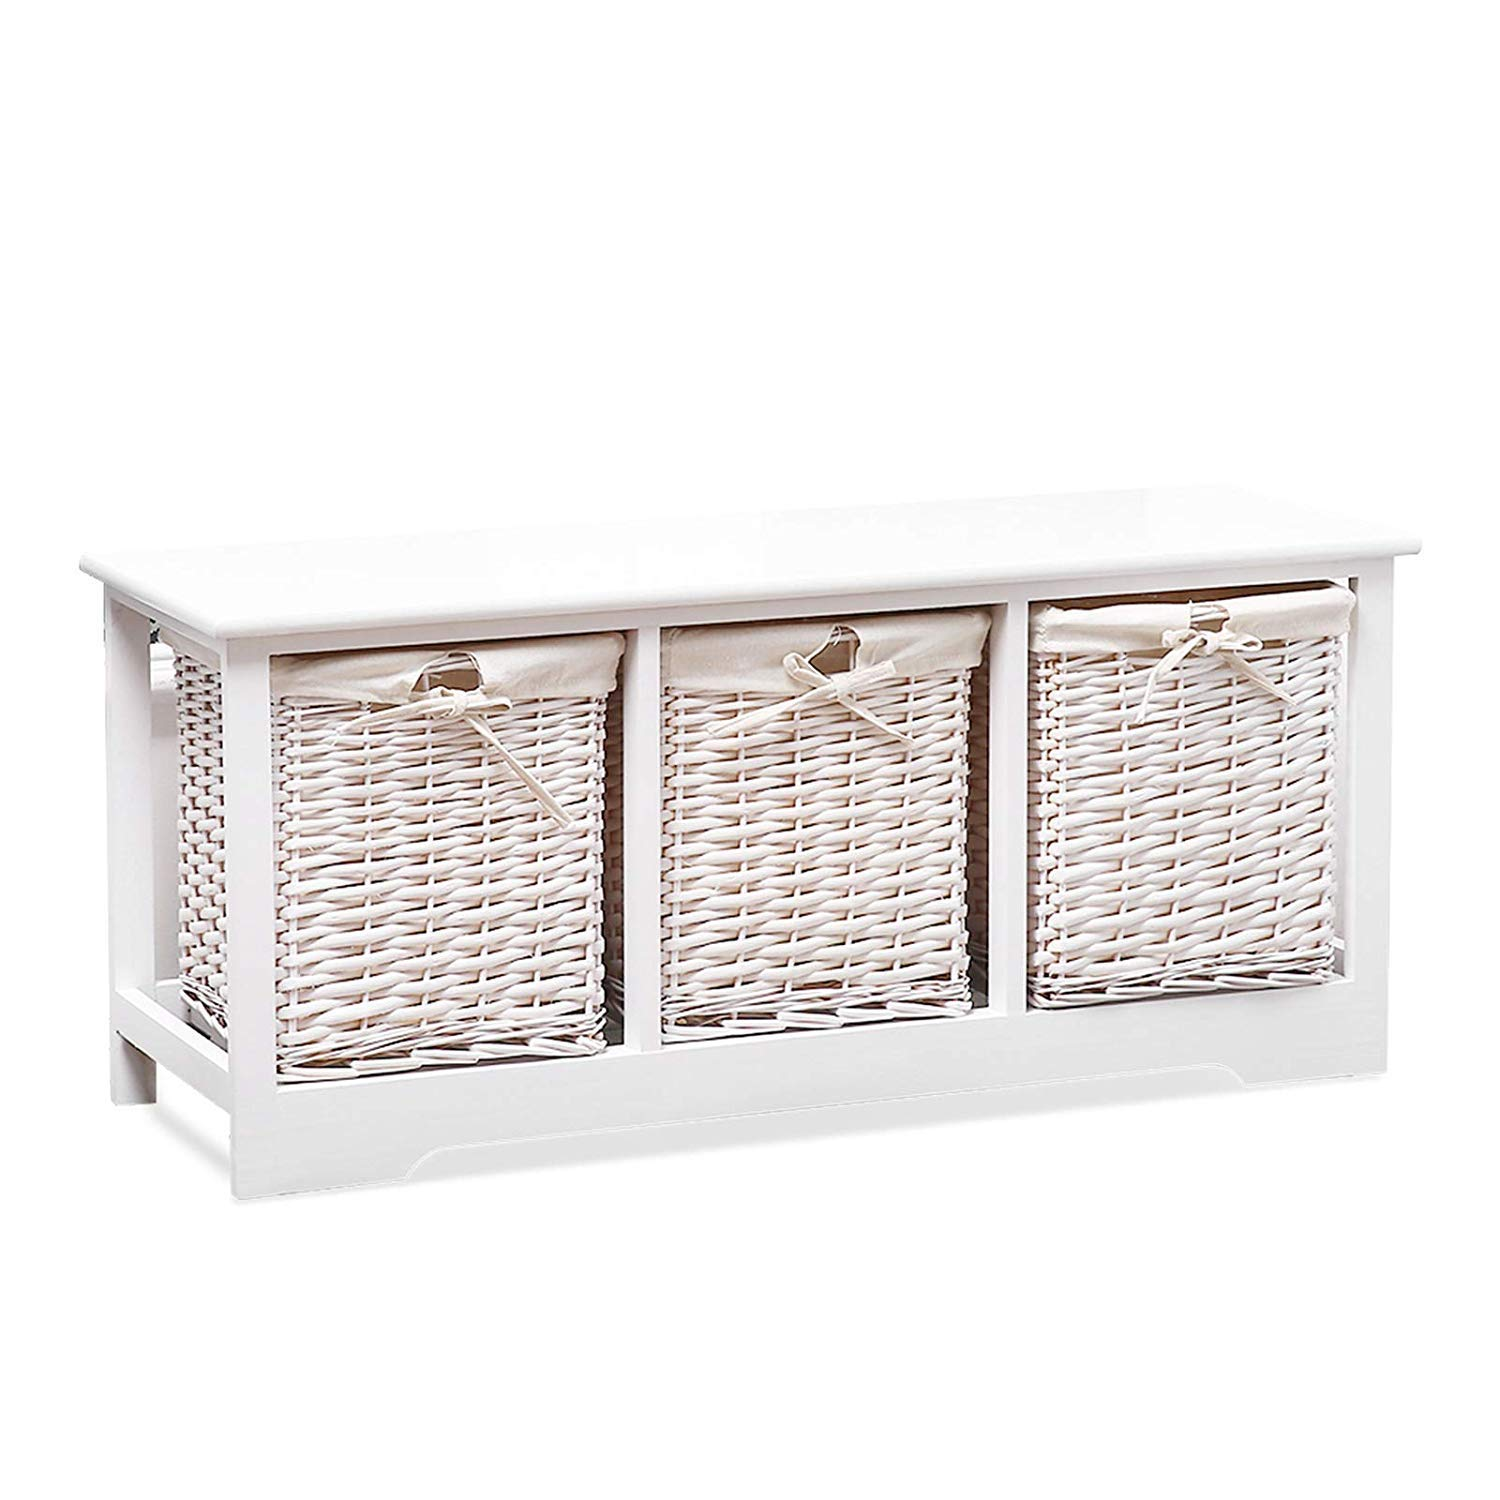 Mecor Wood Storage Bench with 3 Wicker Baskets,Entryway Furniture,Large Rectangular White